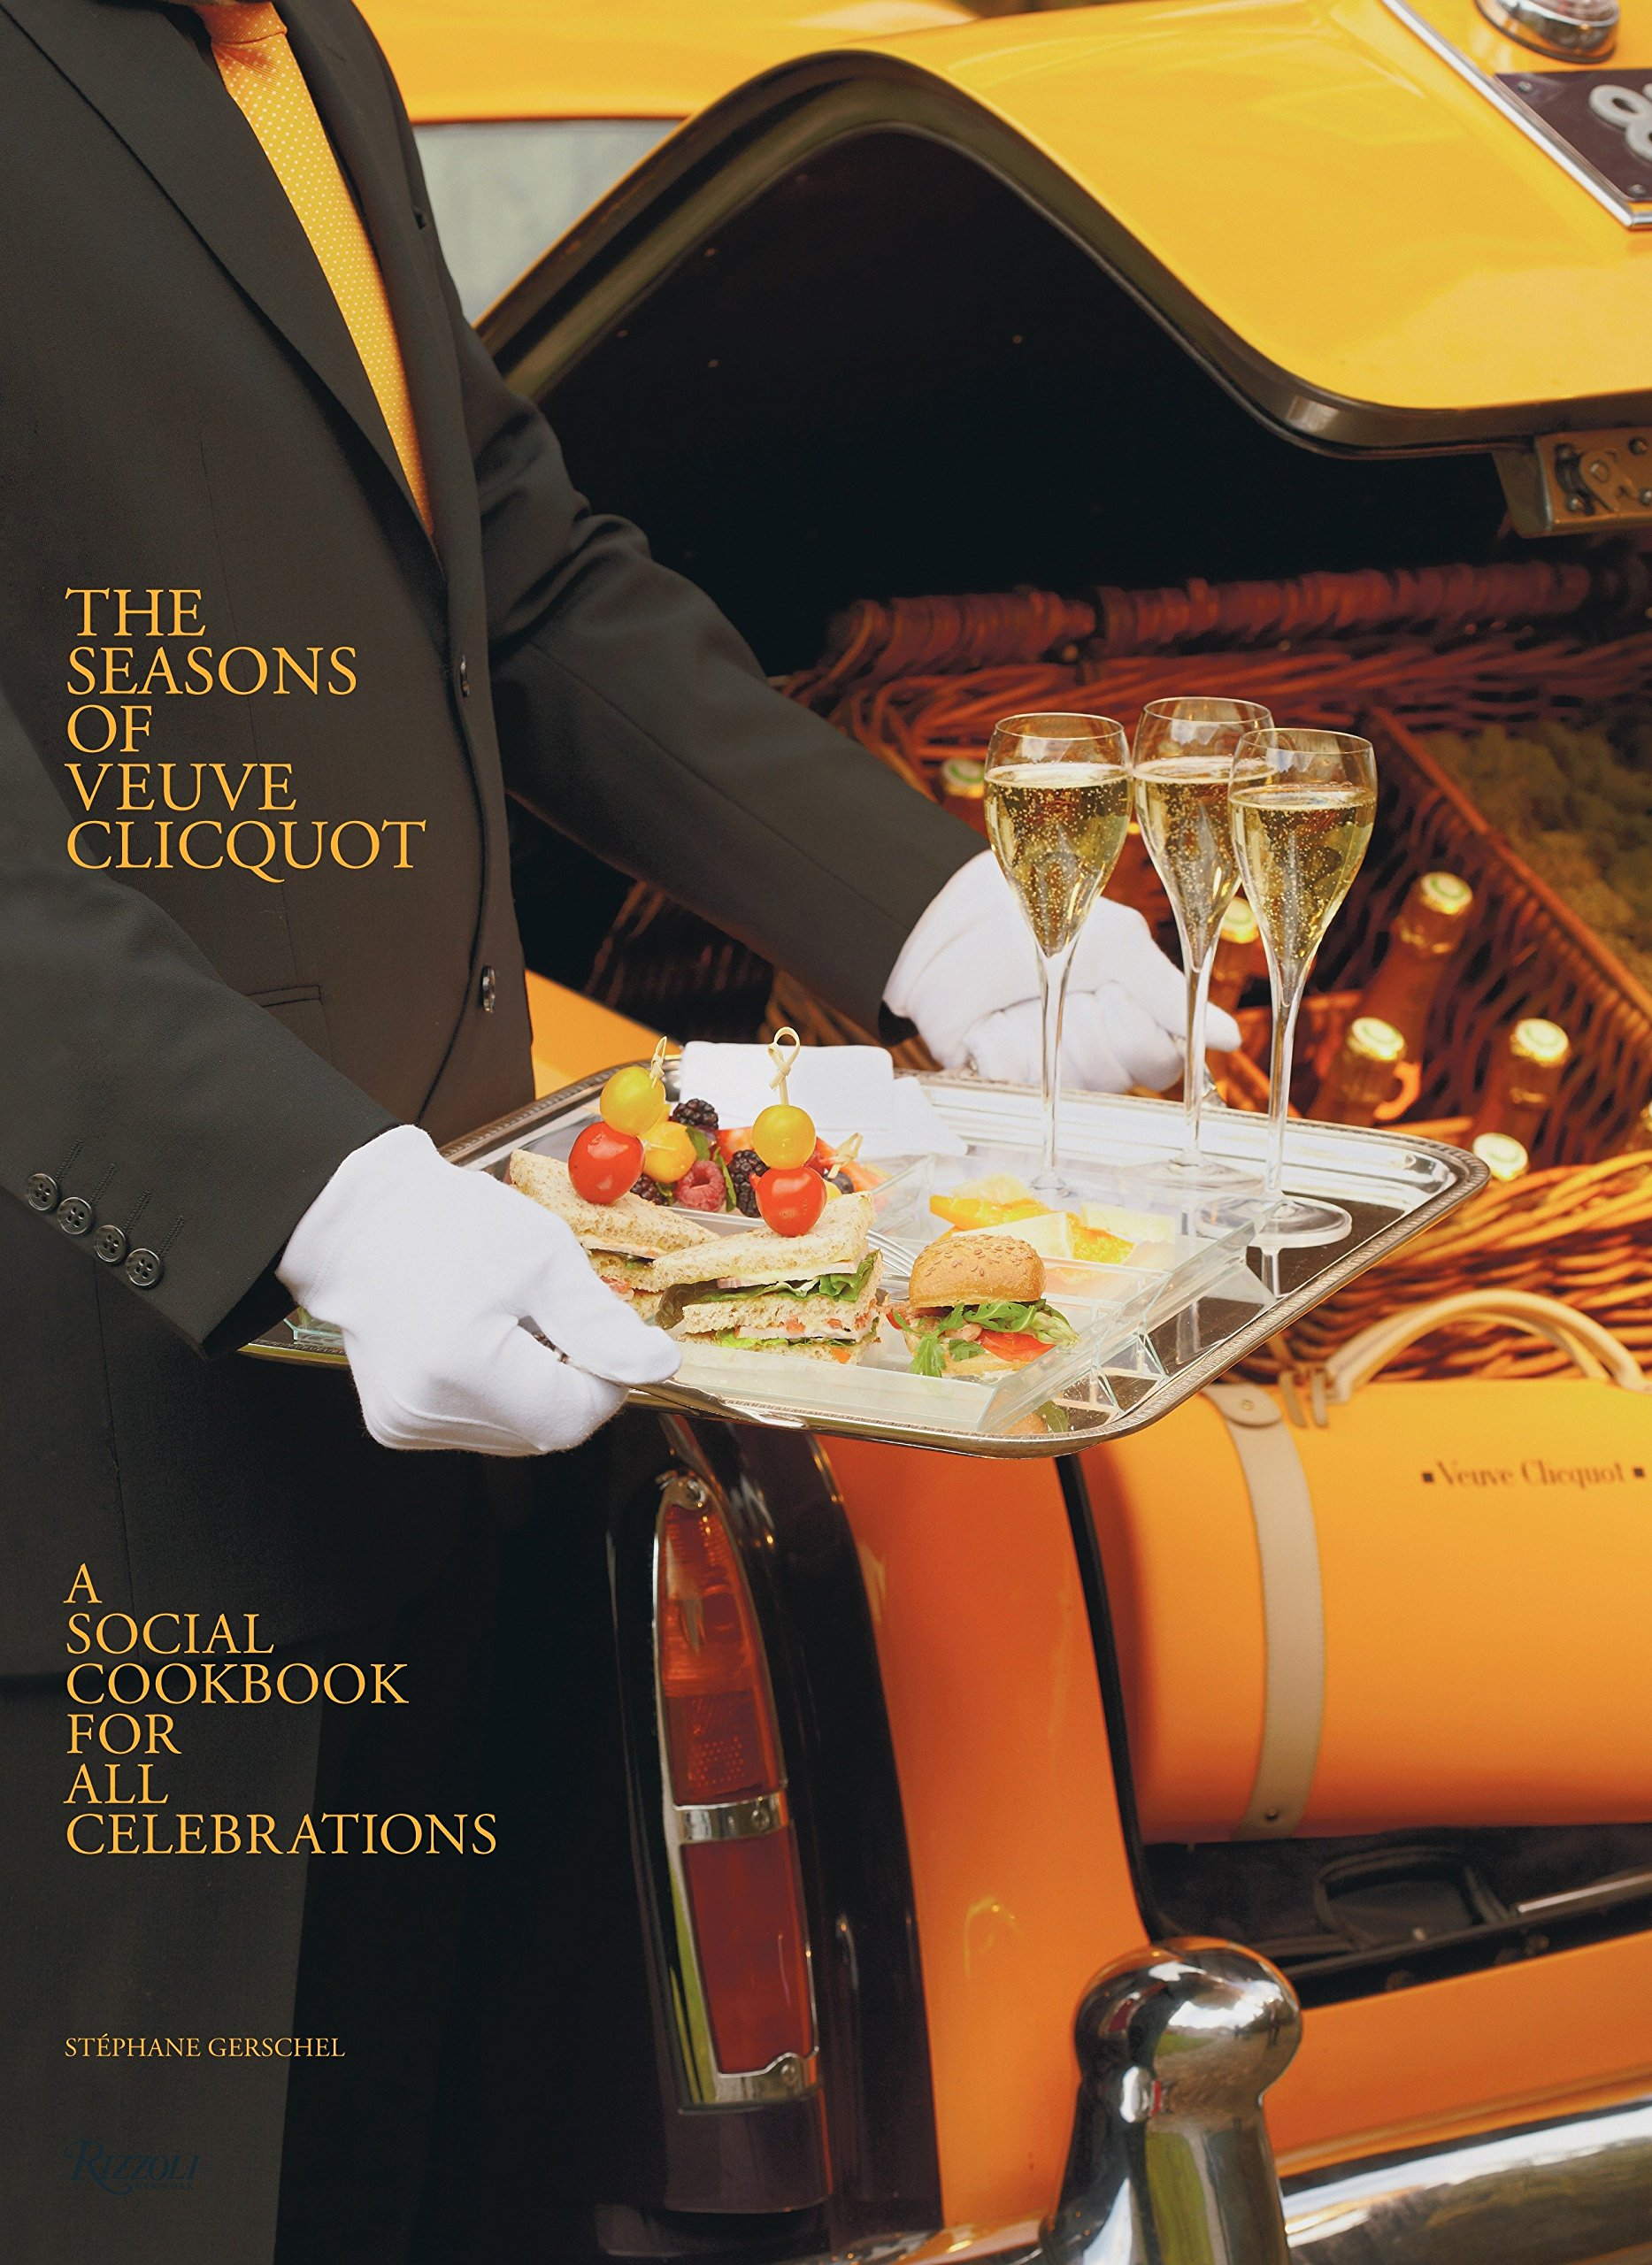 The Seasons of Veuve Clicquot A Social Cookbook for All Celebrations